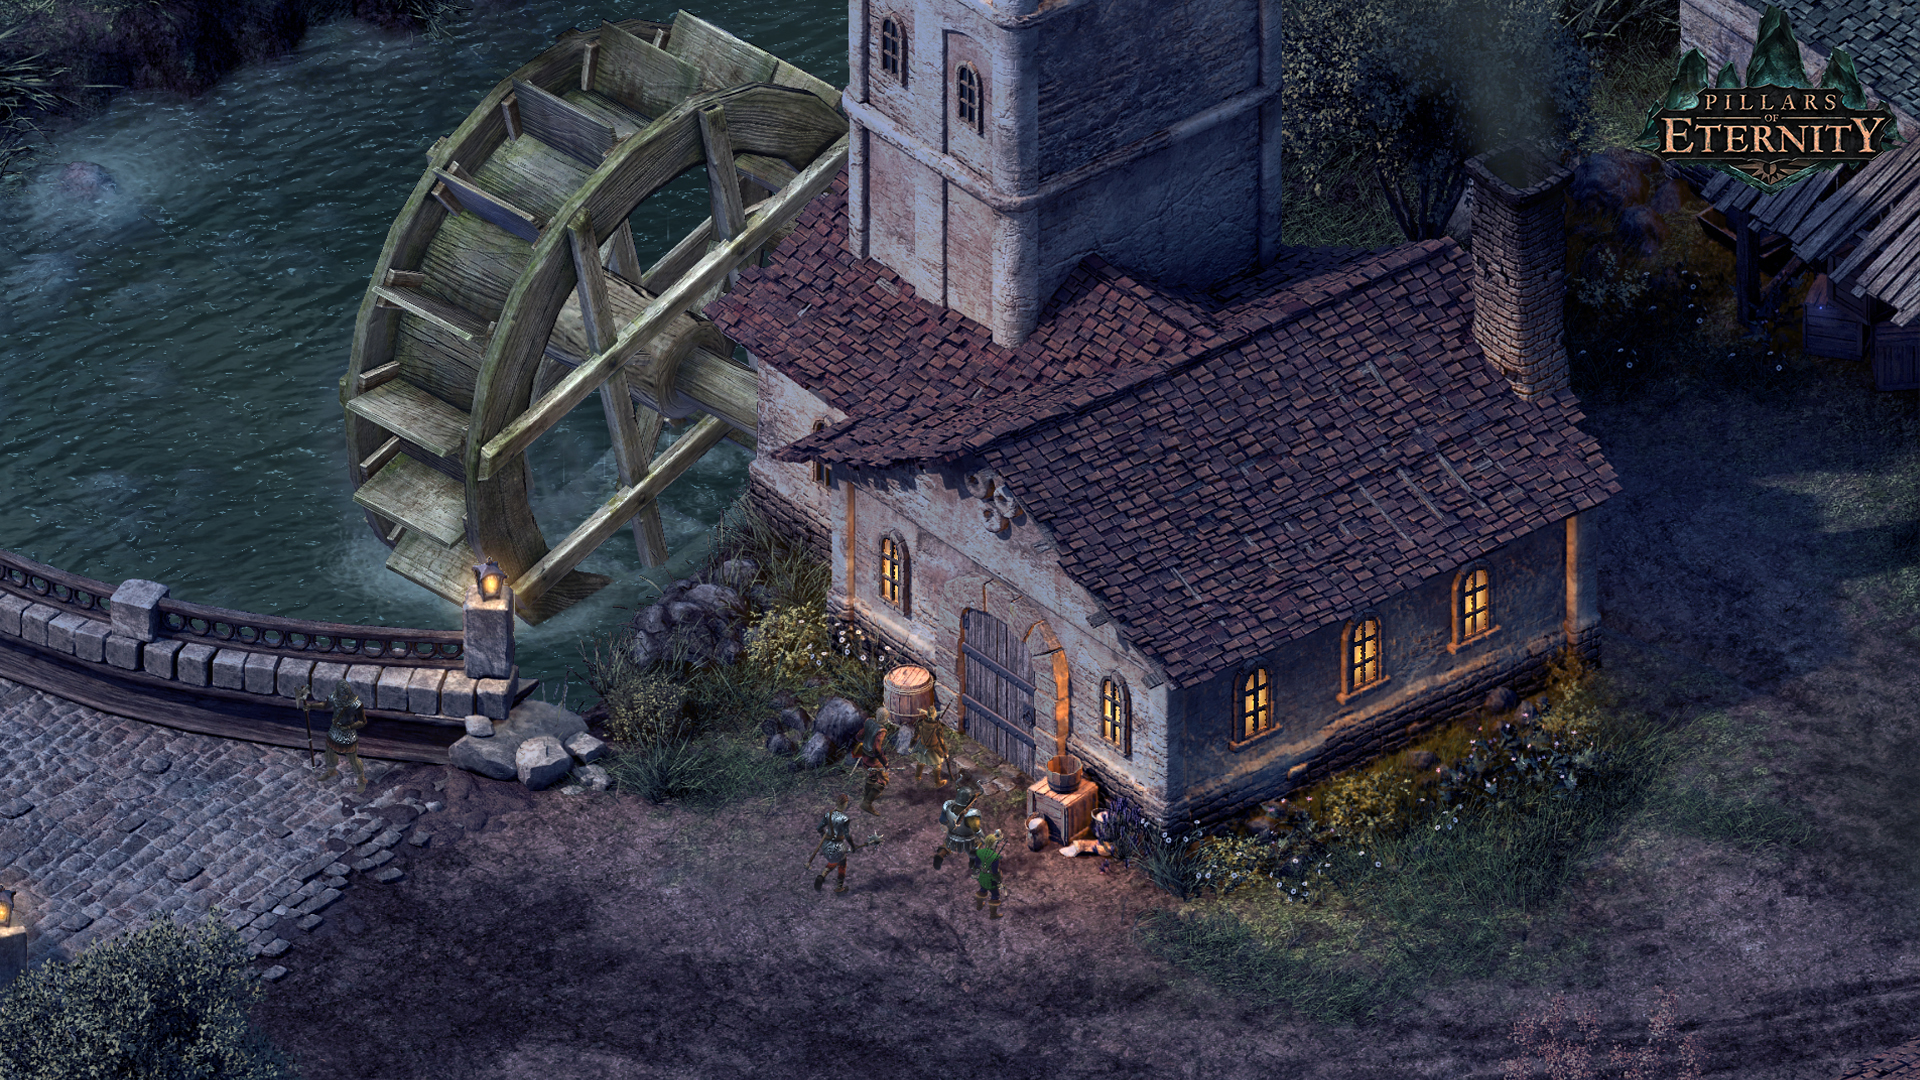 Pillars Of Eternity (PC) - a wayback machine for CRPGs